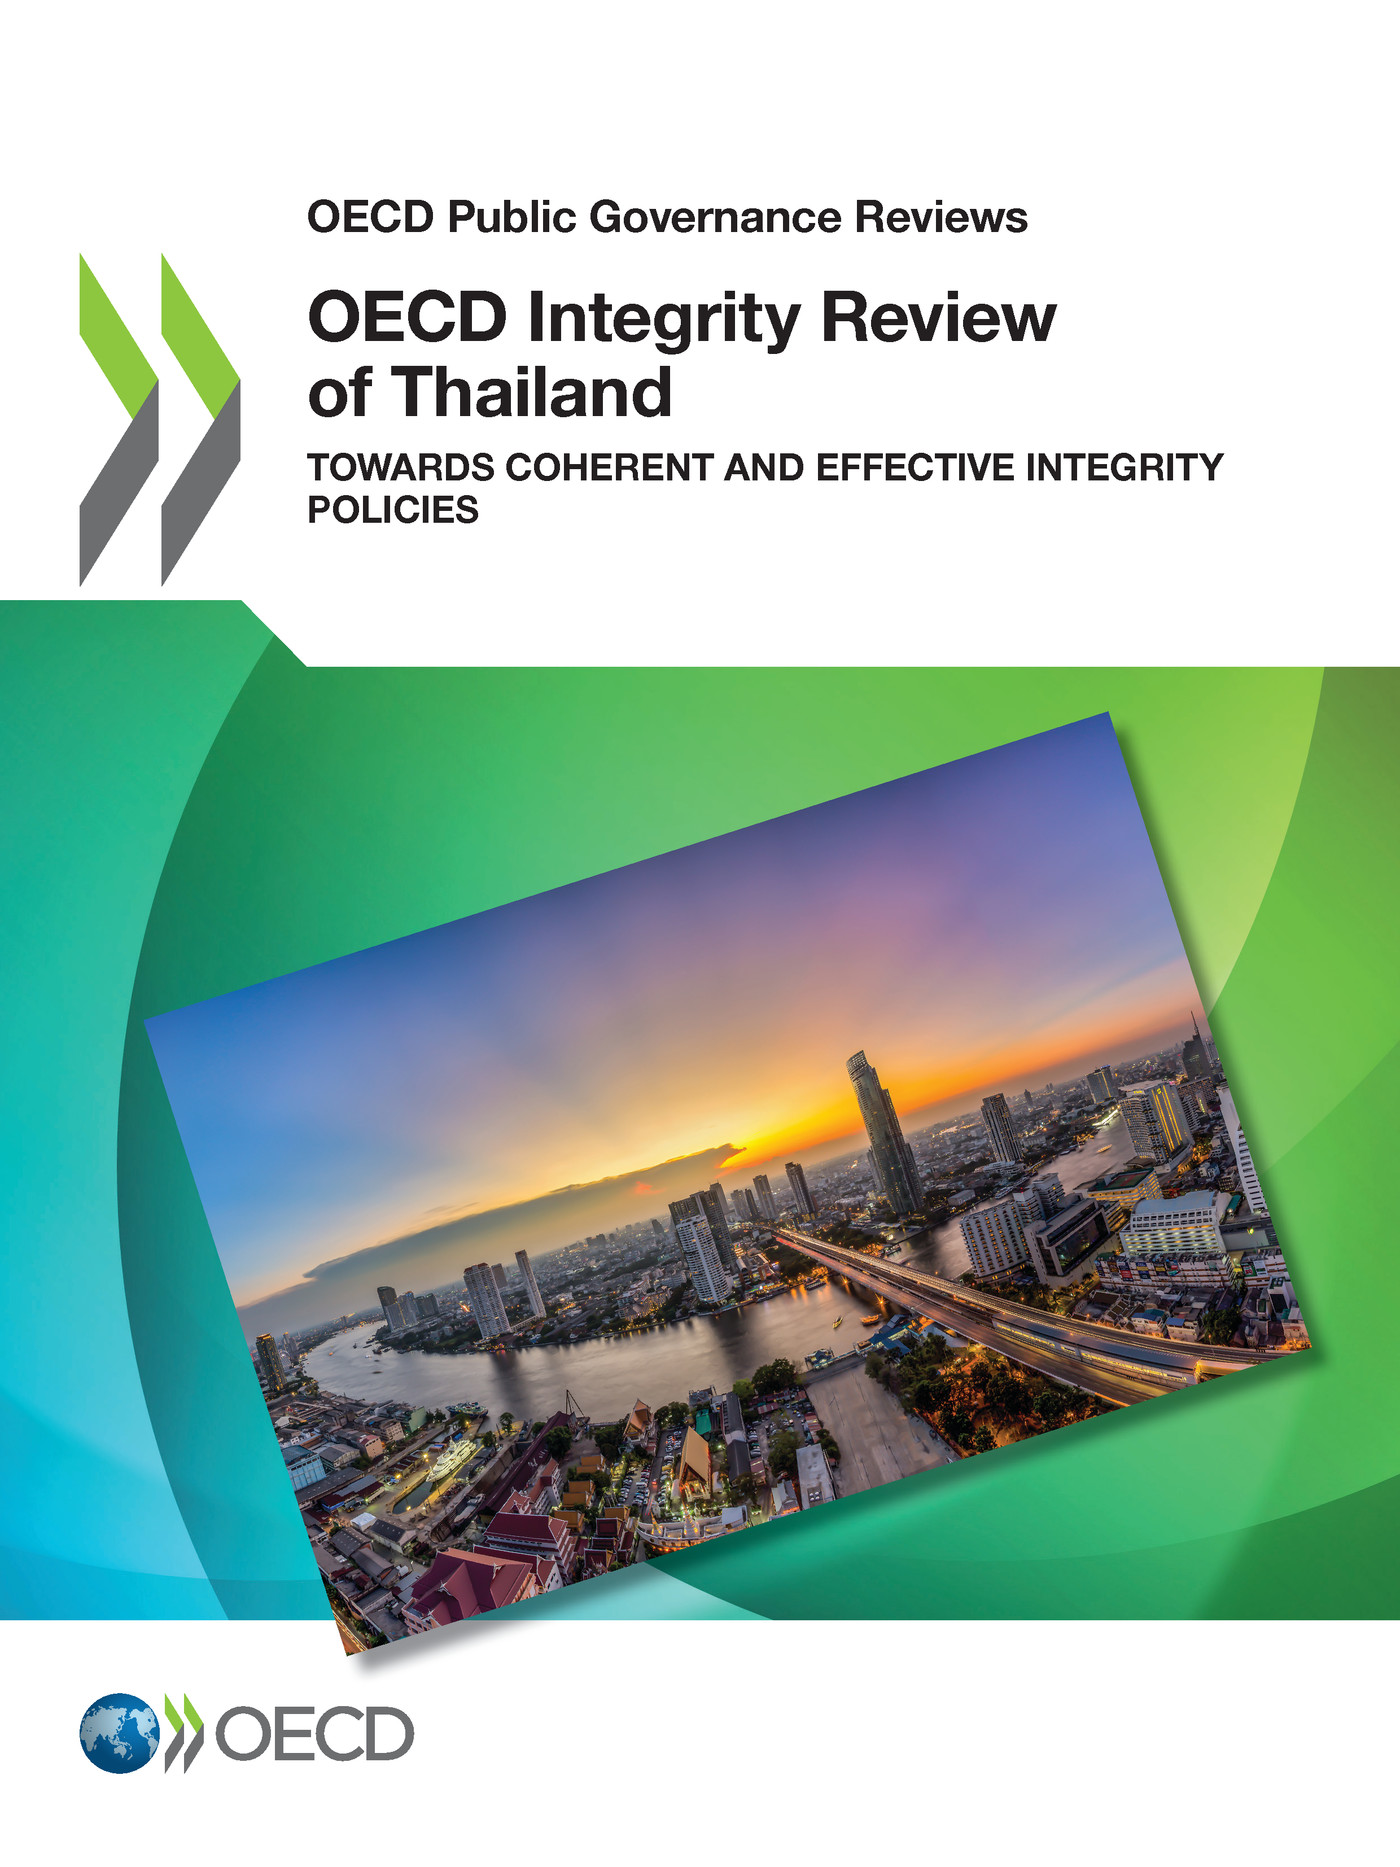 OECD Integrity Review of Thailand De  Collectif - OCDE / OECD